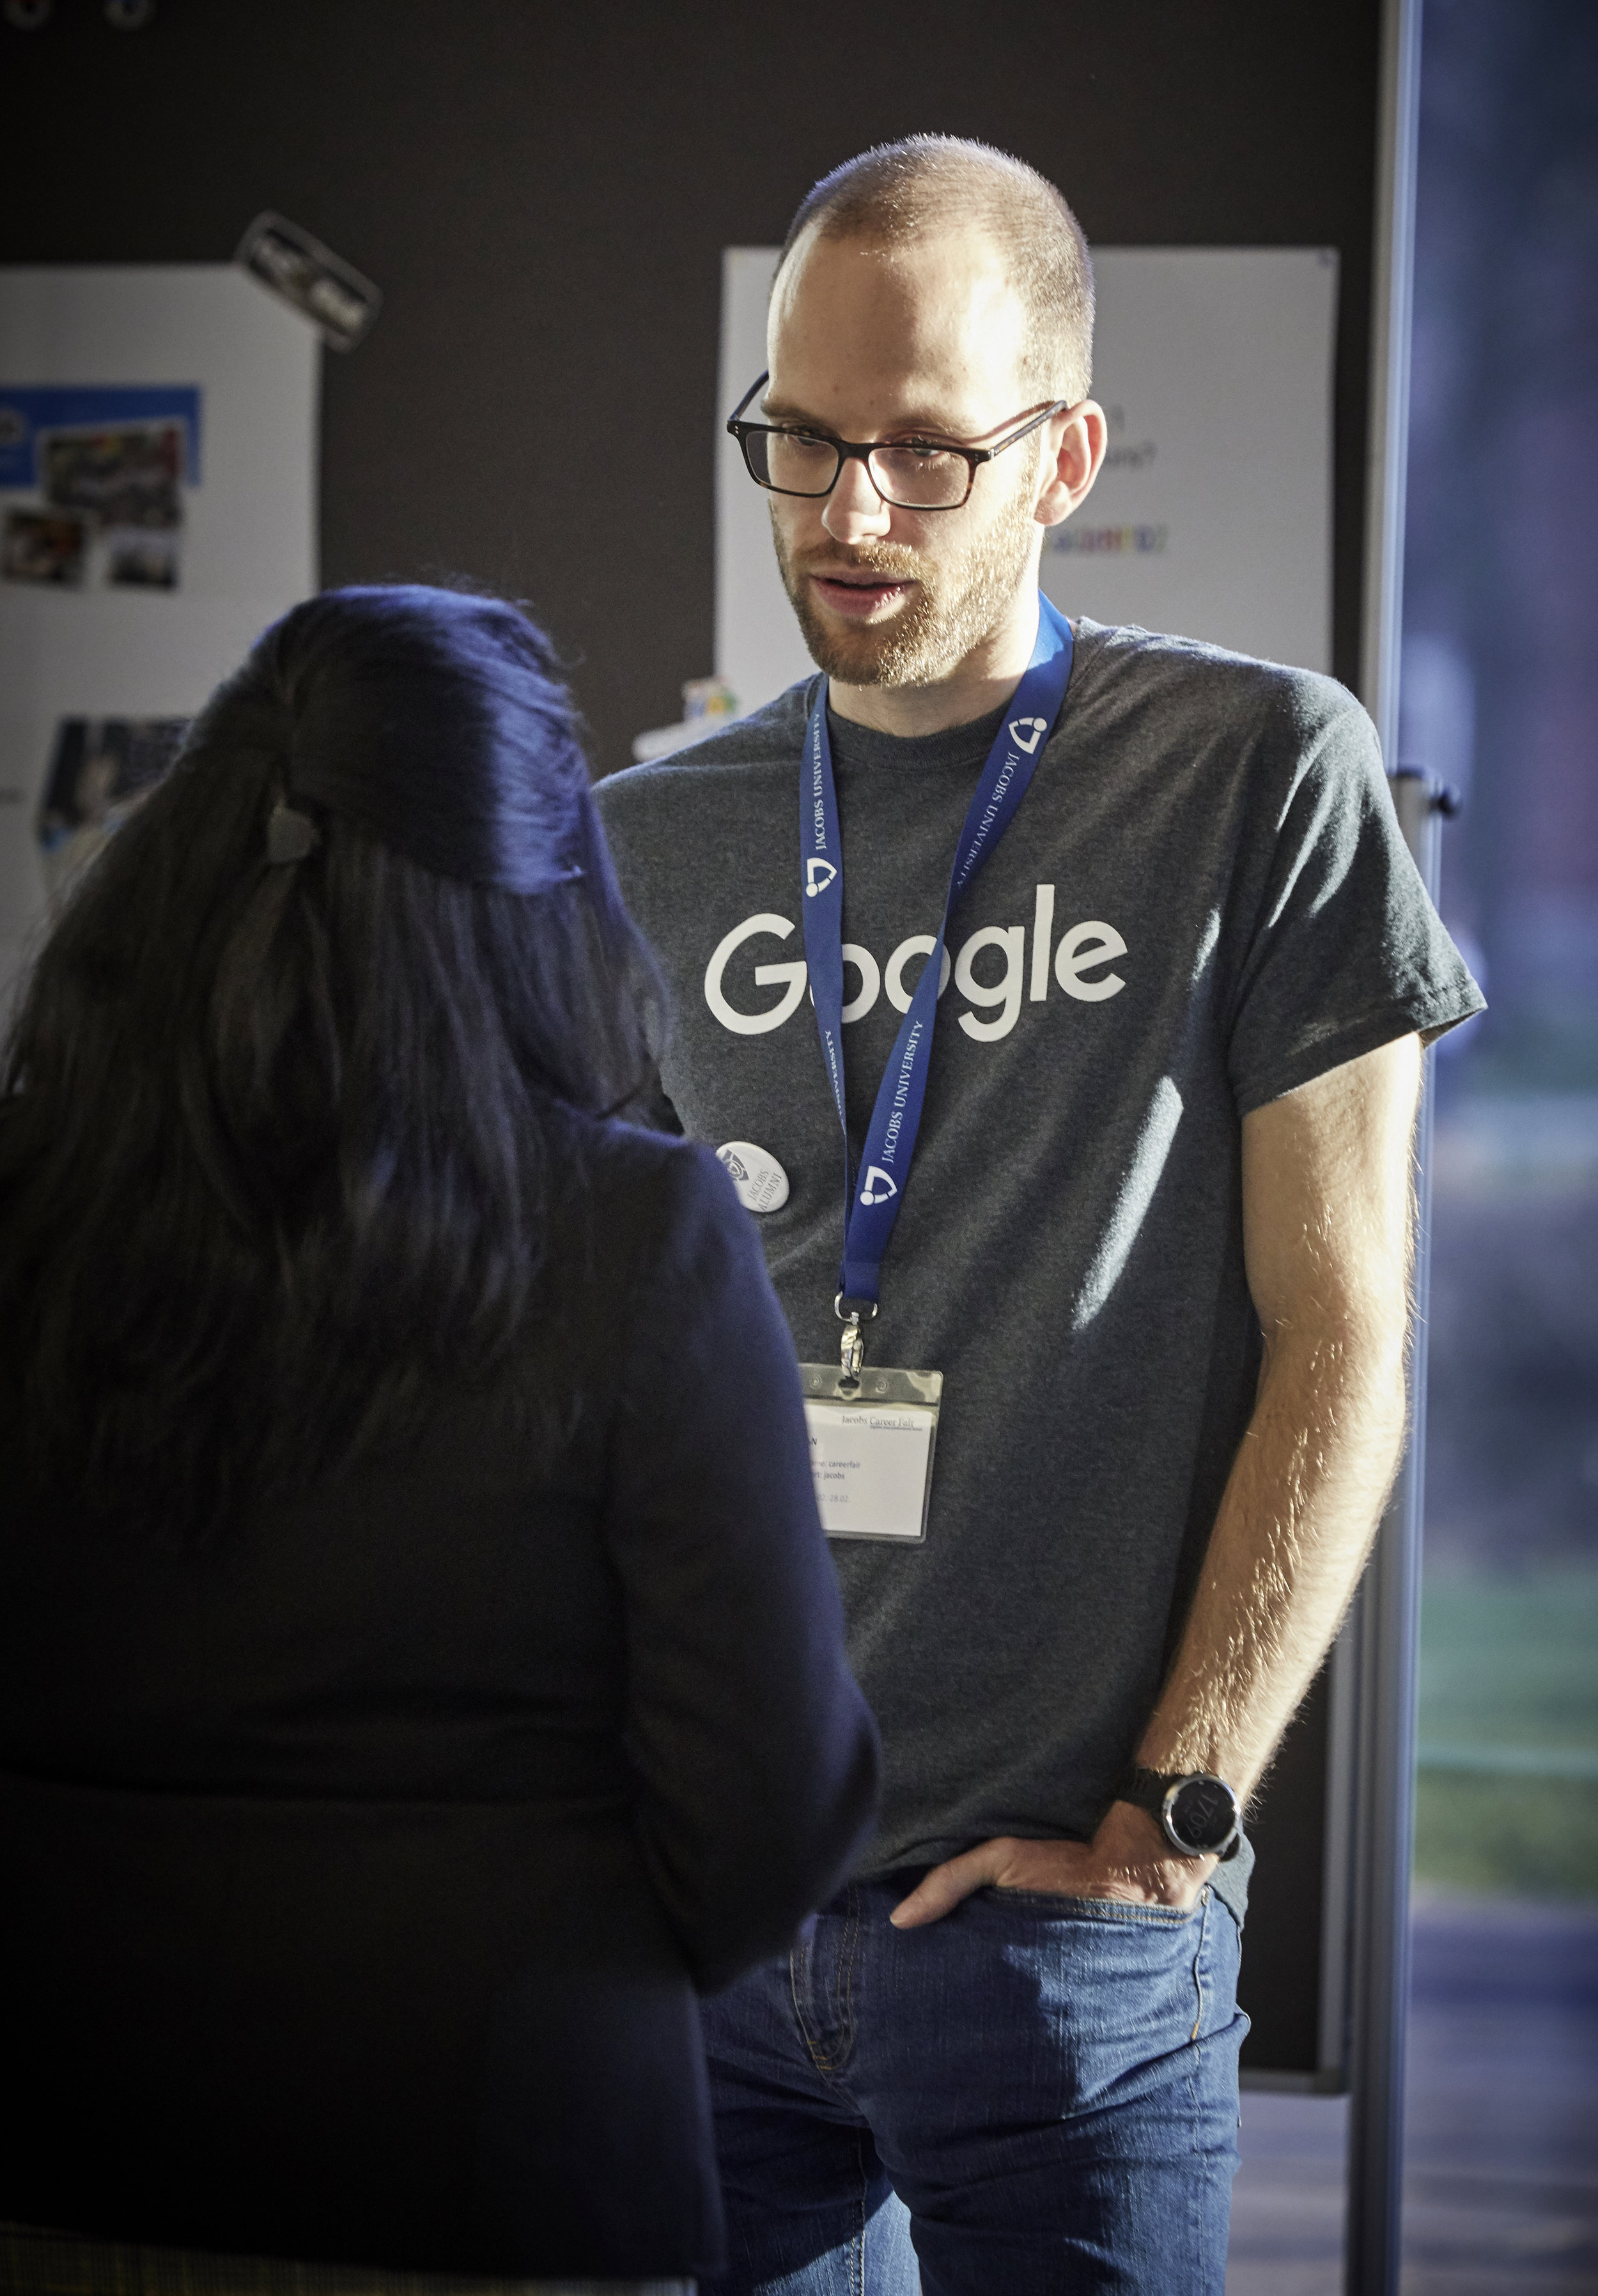 Simon Möller (Germany) | Class of 2013 | Software Engineer at Google